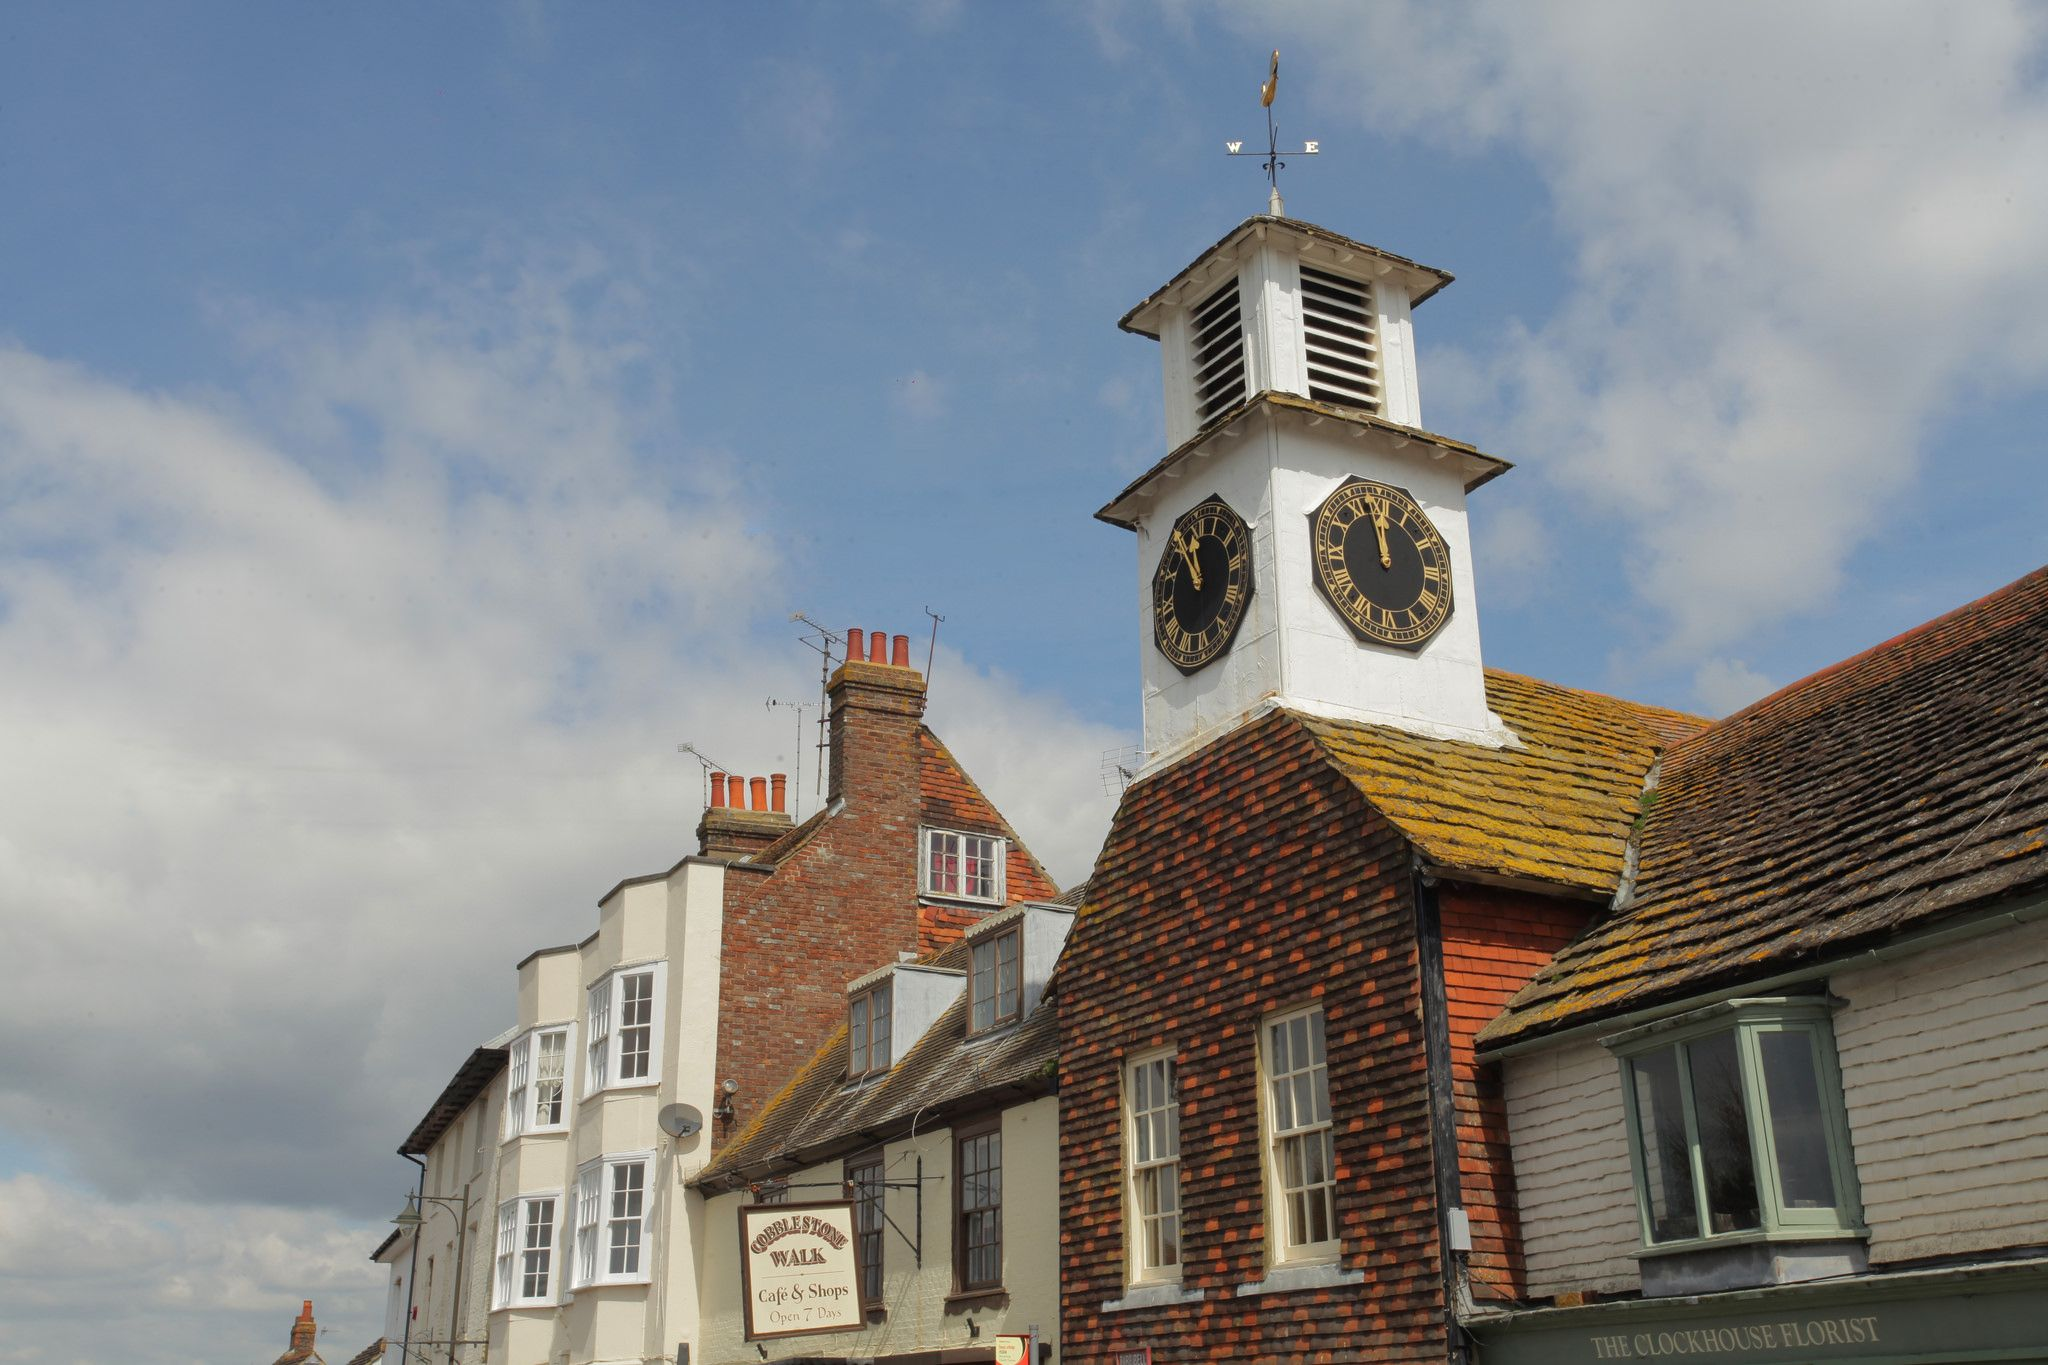 https://flic.kr/p/GUkST4 | Steyning Village Sussex | www.adamswaine.co.uk Steyning (/stɛnɪŋ/) is a small rural town and civil parish in the Horsham District of West Sussex, England. It is located at the north end of the River Adur gap in the South Downs, four miles (6.4 km) north of Shoreham-by-Sea. The smaller villages of Bramber and Upper Beeding constitute, with Steyning, a built-up area at this crossing-point of the river